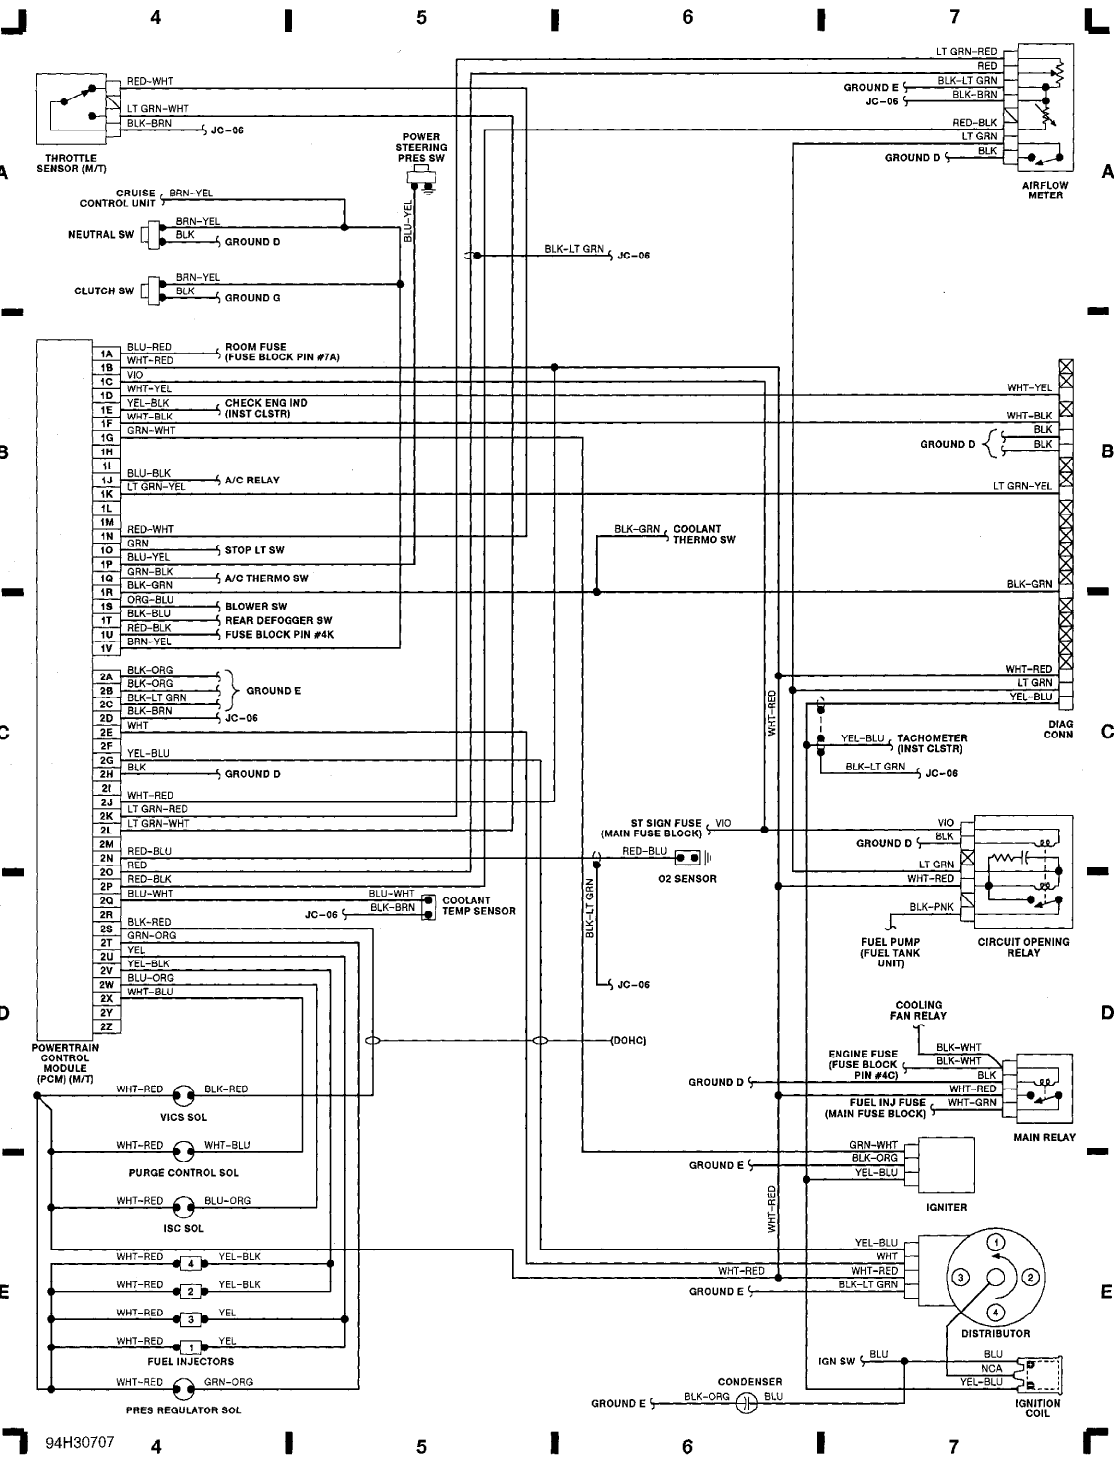 2004 mazda rx8 stereo wiring diagram auto electrical 1998 lincoln town car fuse panel